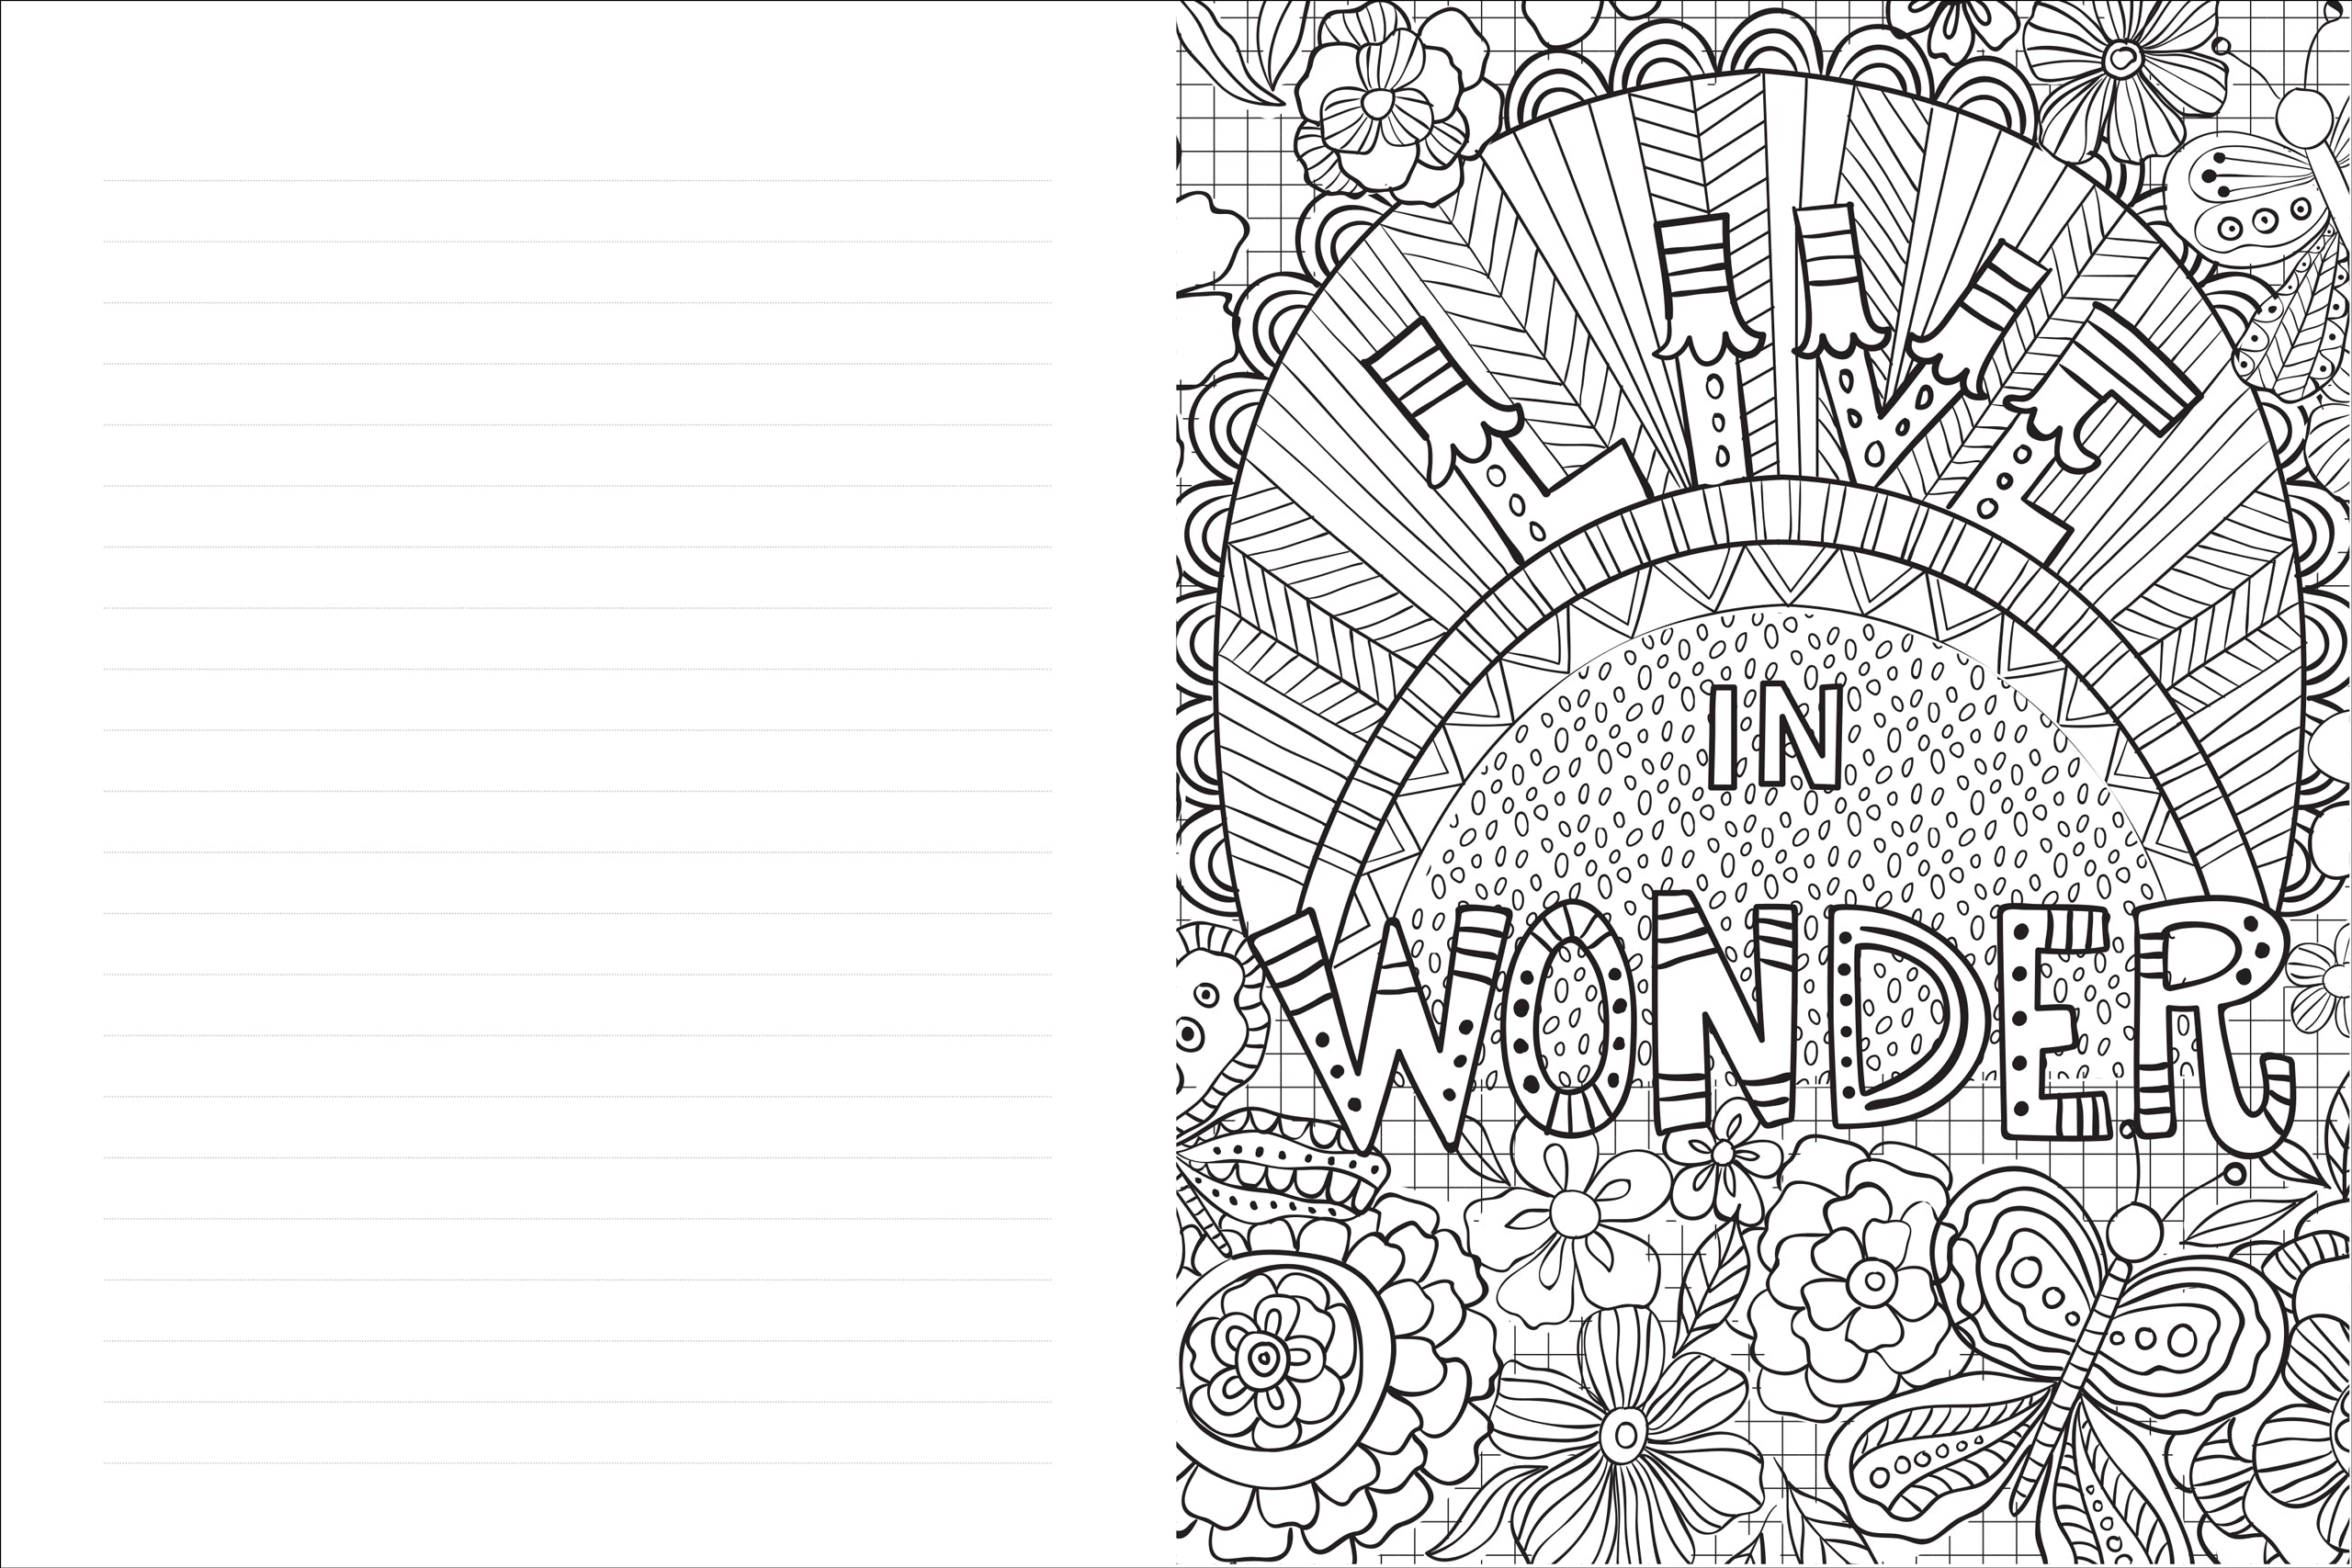 Live, Love, Laugh Coloring Journal - Medium